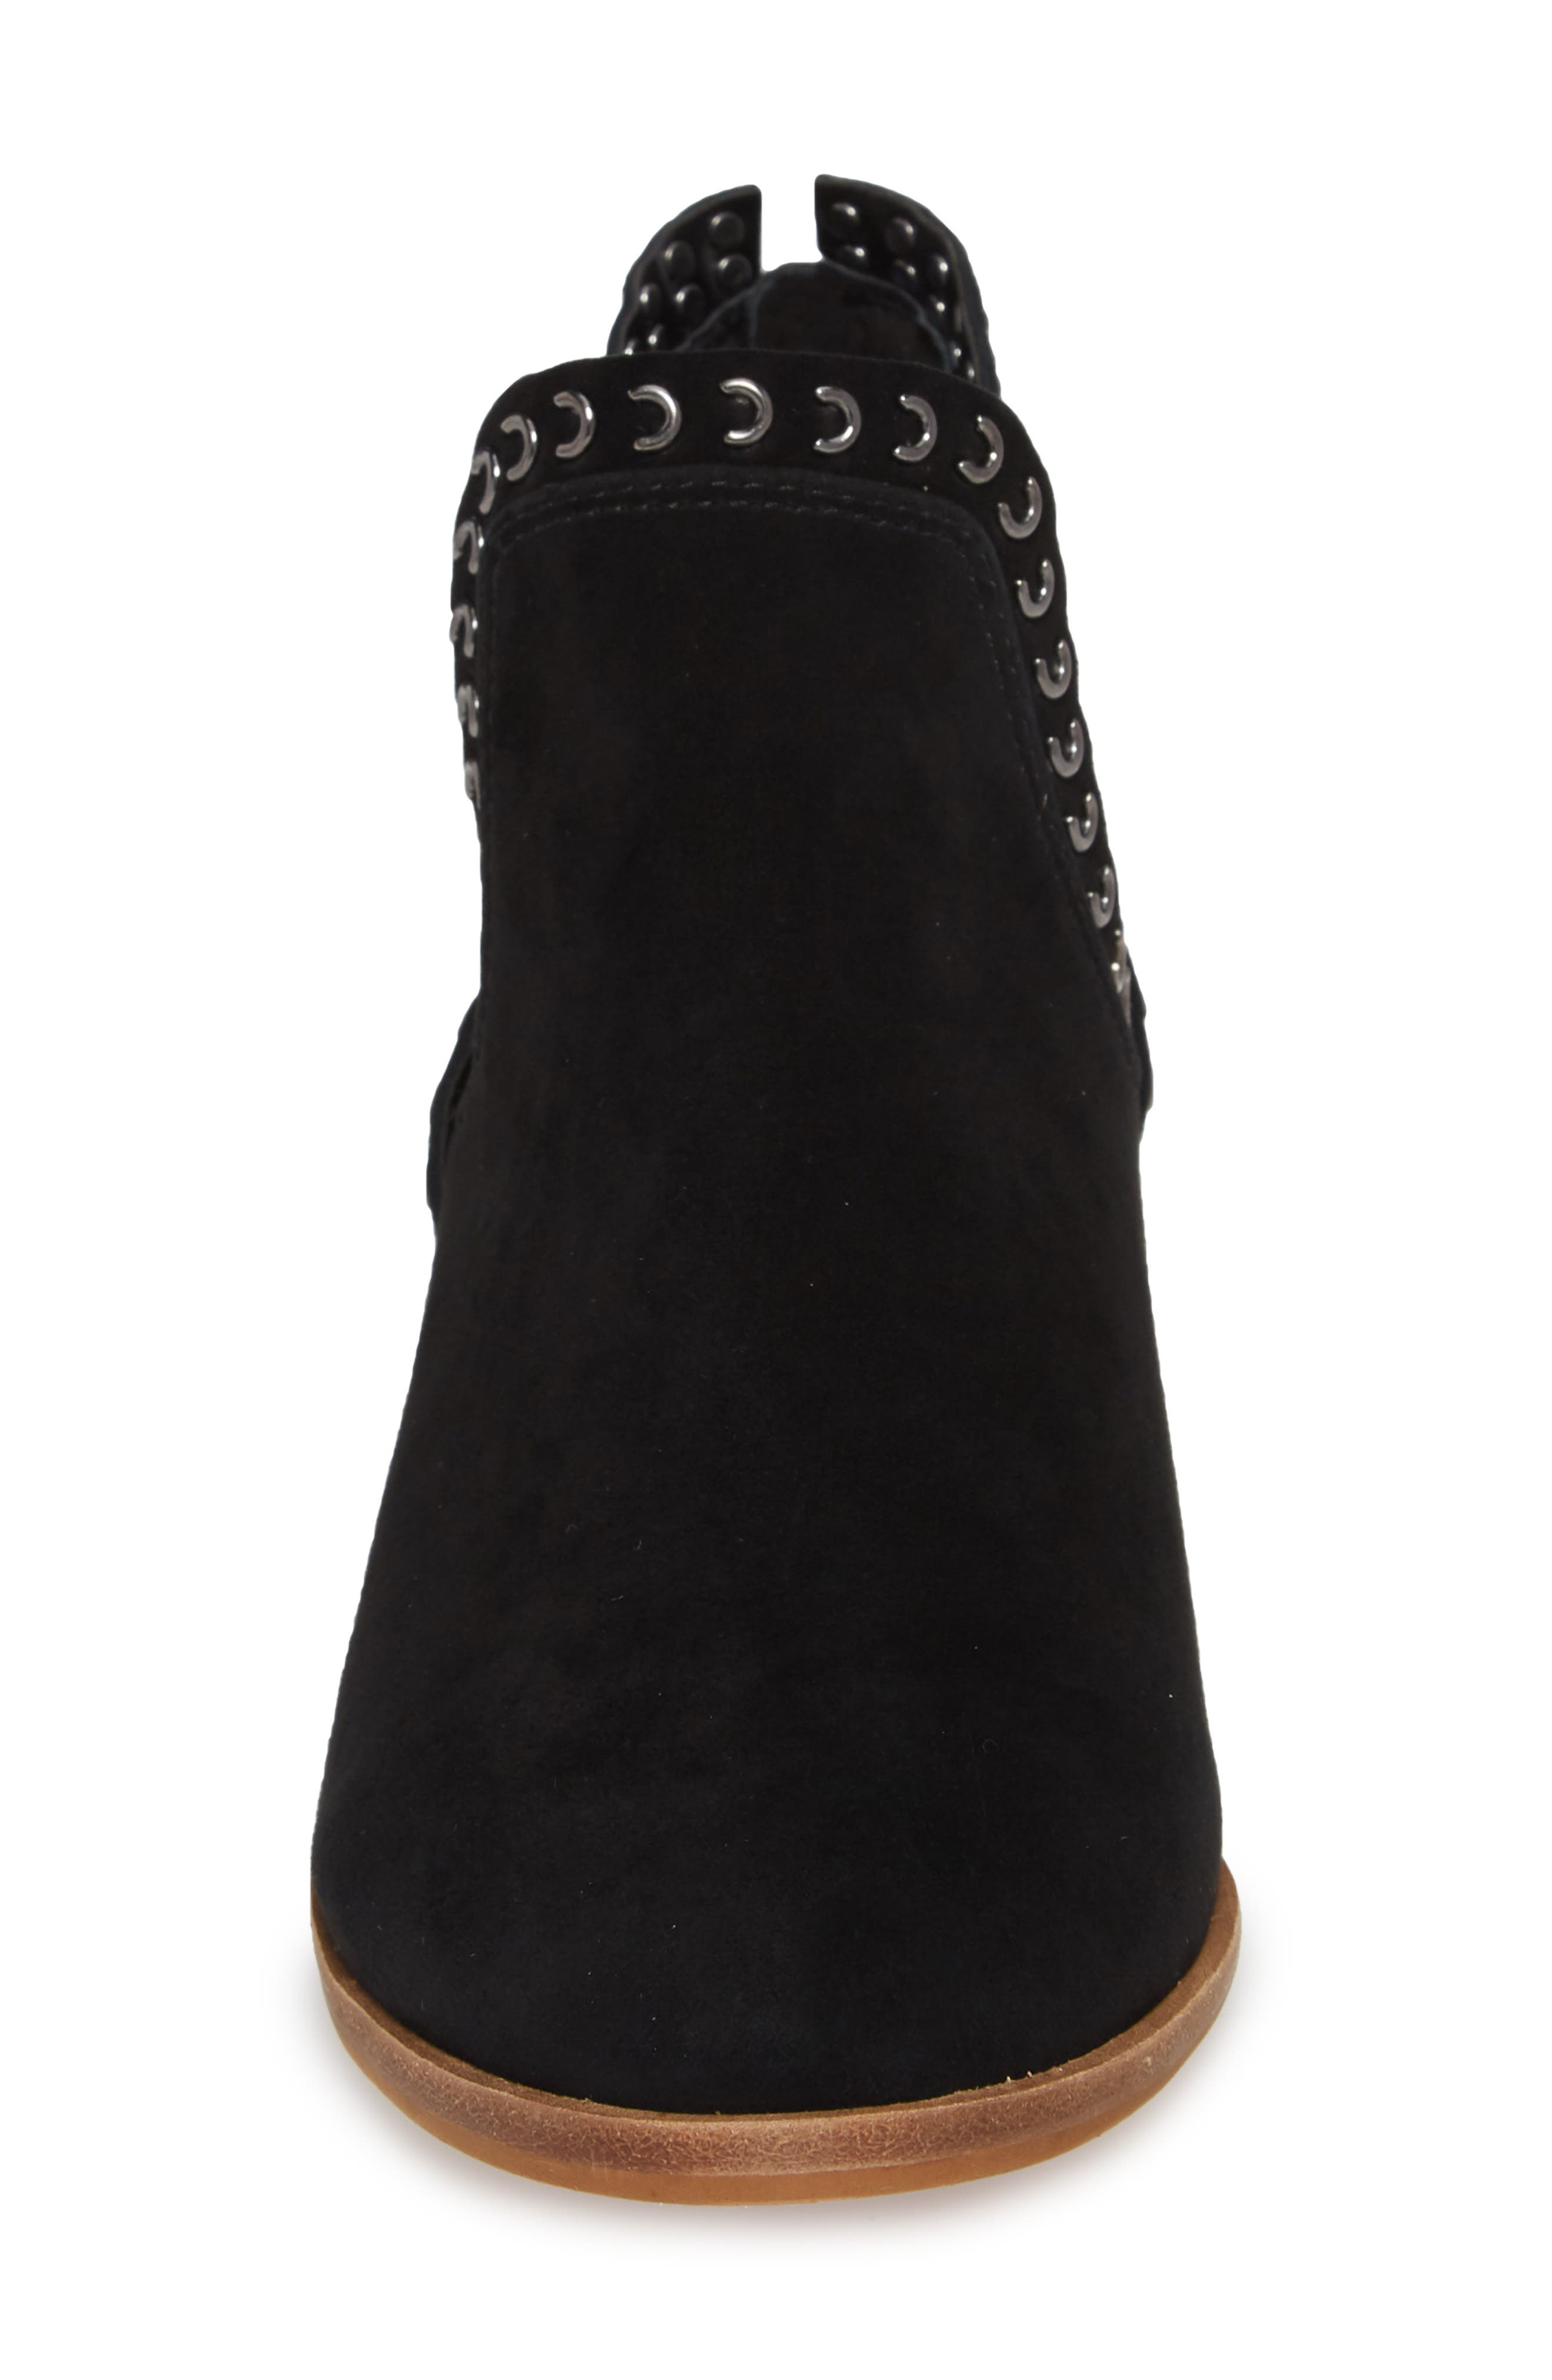 VINCE CAMUTO, Prafinta Boot, Alternate thumbnail 4, color, BLACK SUEDE